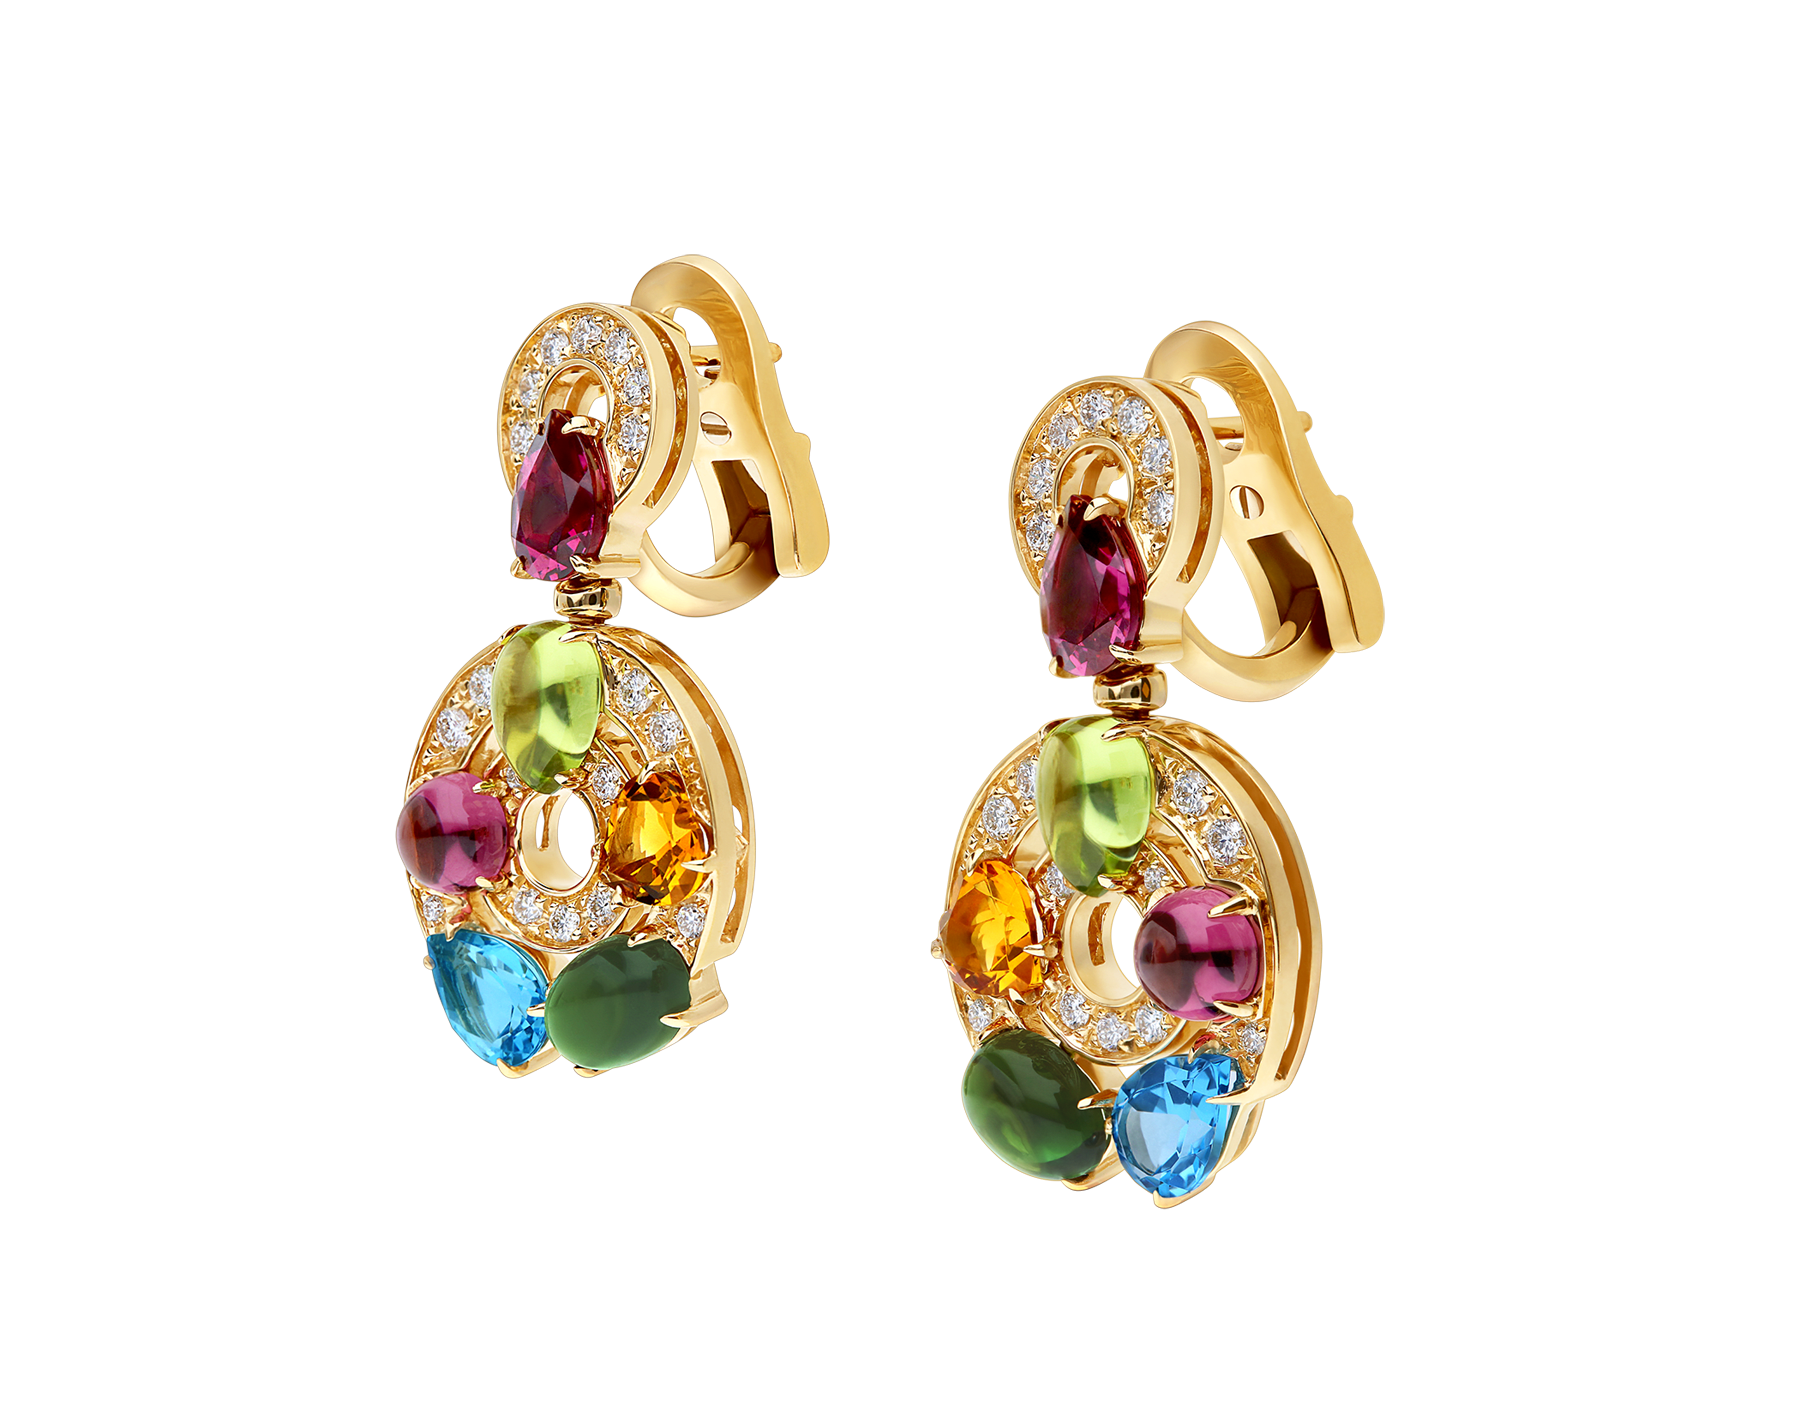 Cerchi 18kt yellow gold earrings set with blue topazes, green tourmalines, peridots, citrine quartz, rhodolite garnets and pavé diamonds 339141 image 2